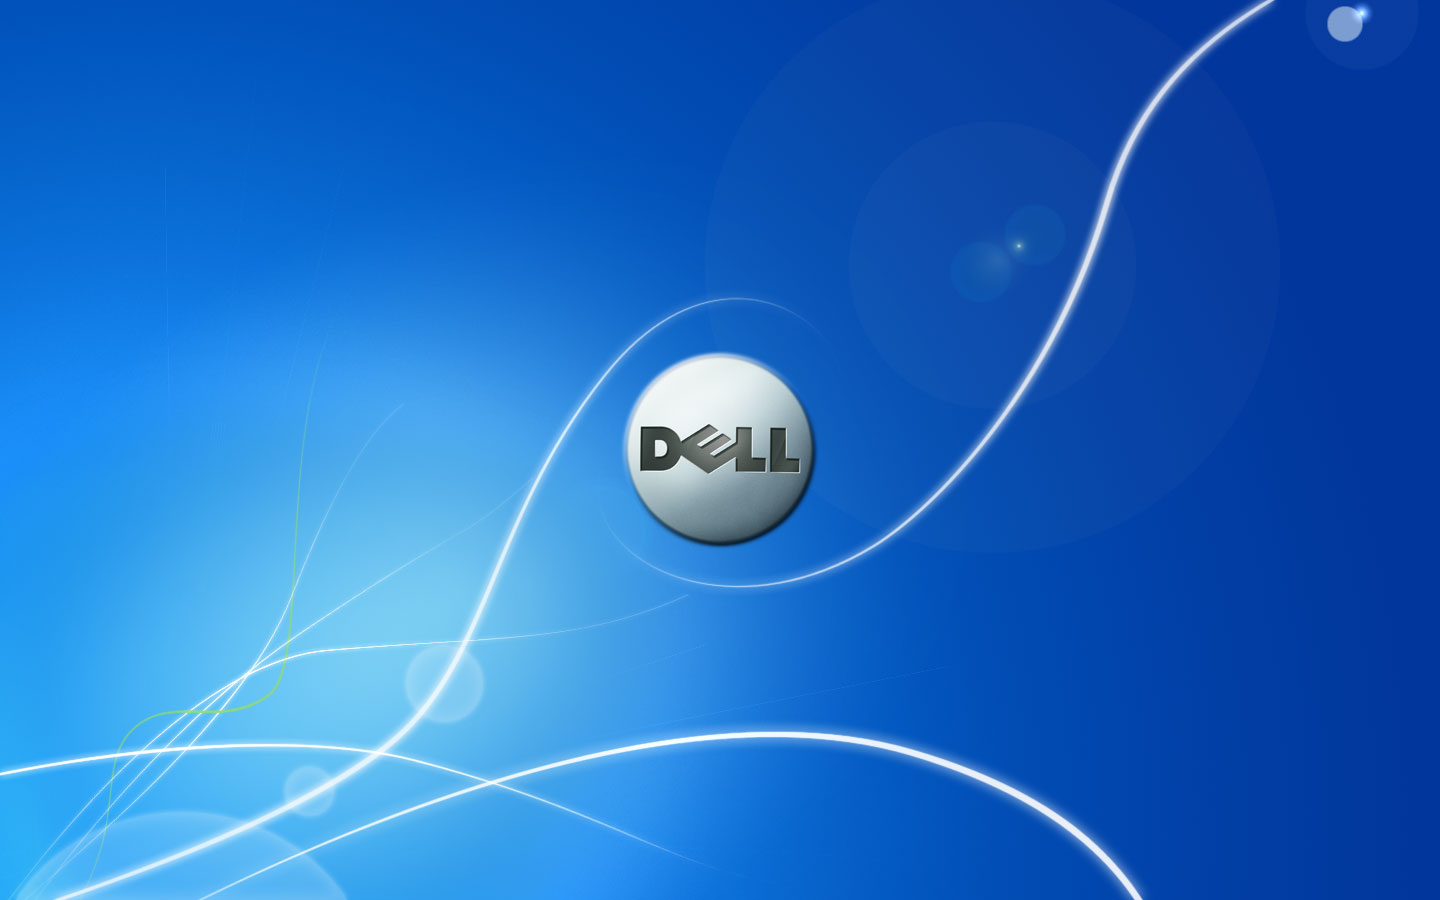 Dell Inspiron Wallpaper Background 1440x900 px 007 Mb 1440x900